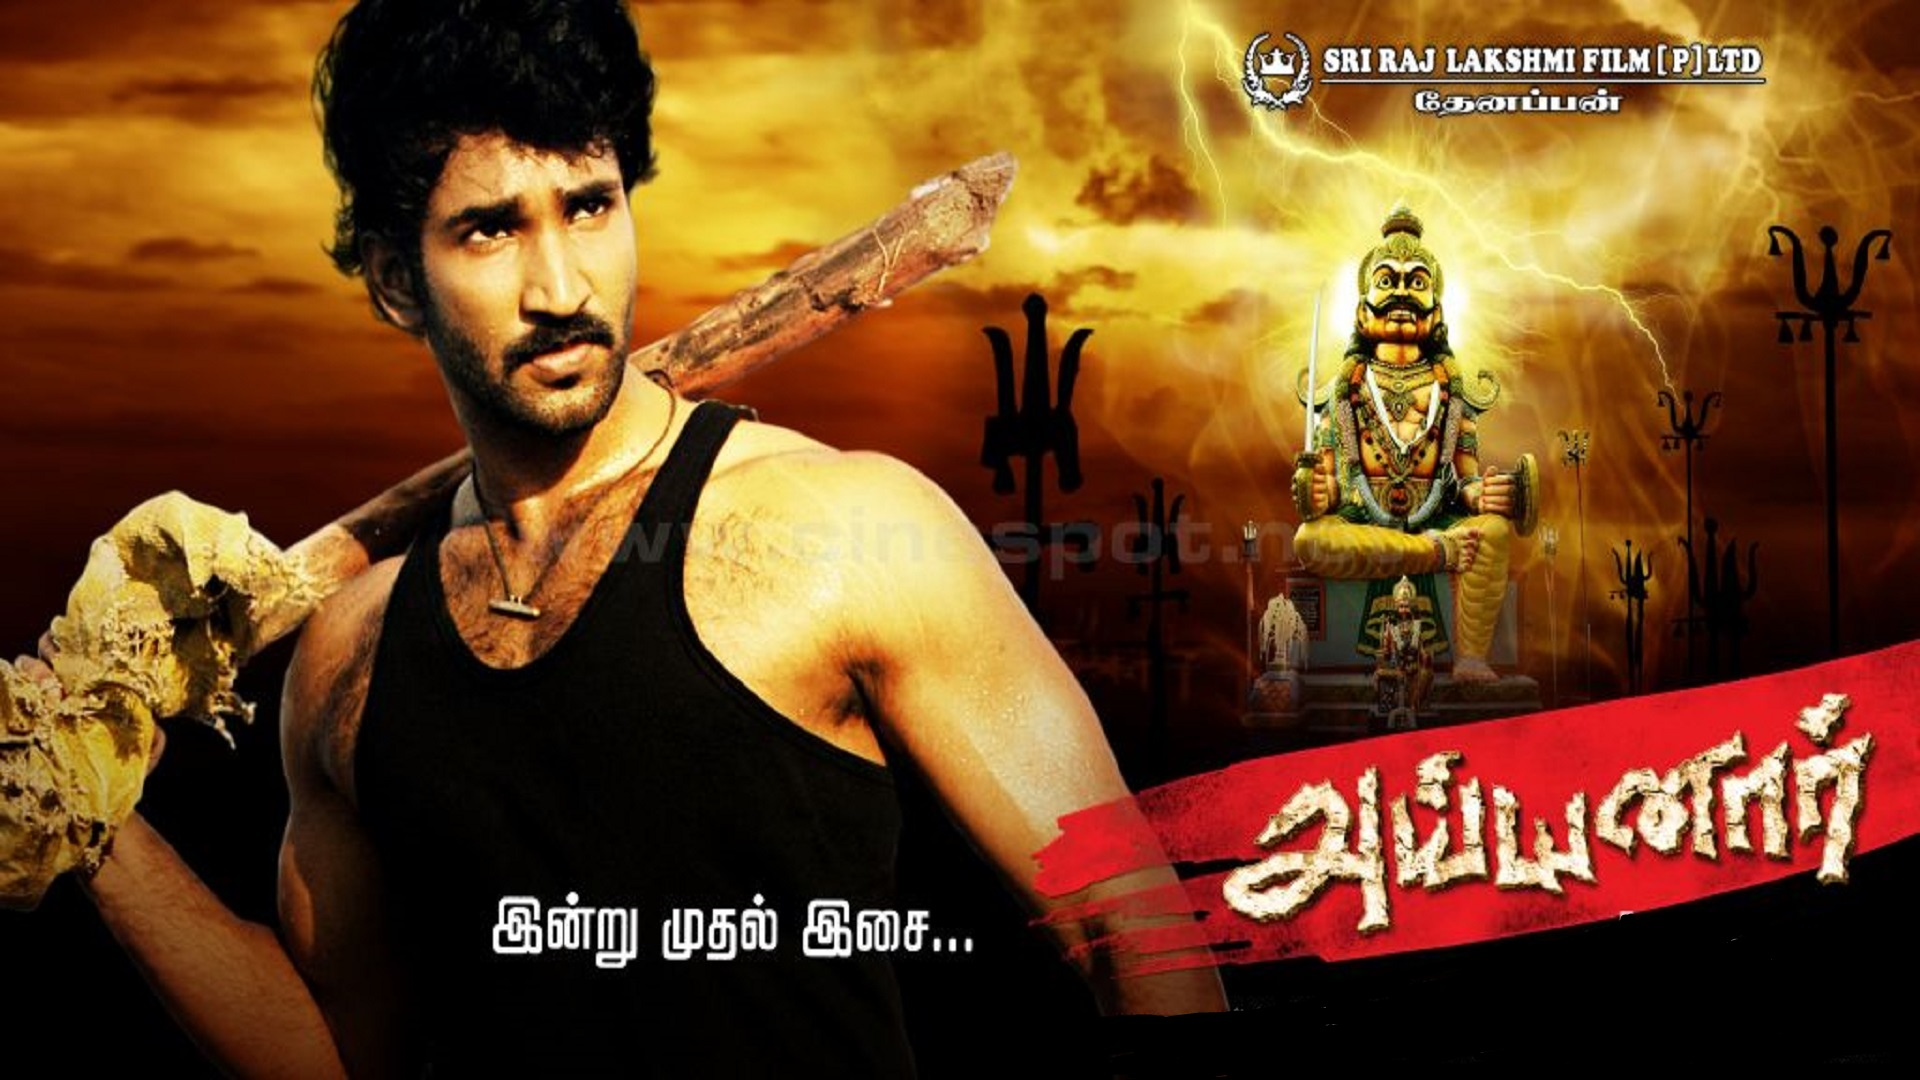 ayyanar-tamil-movie-free-hd-wallpapers - hd wallpaper